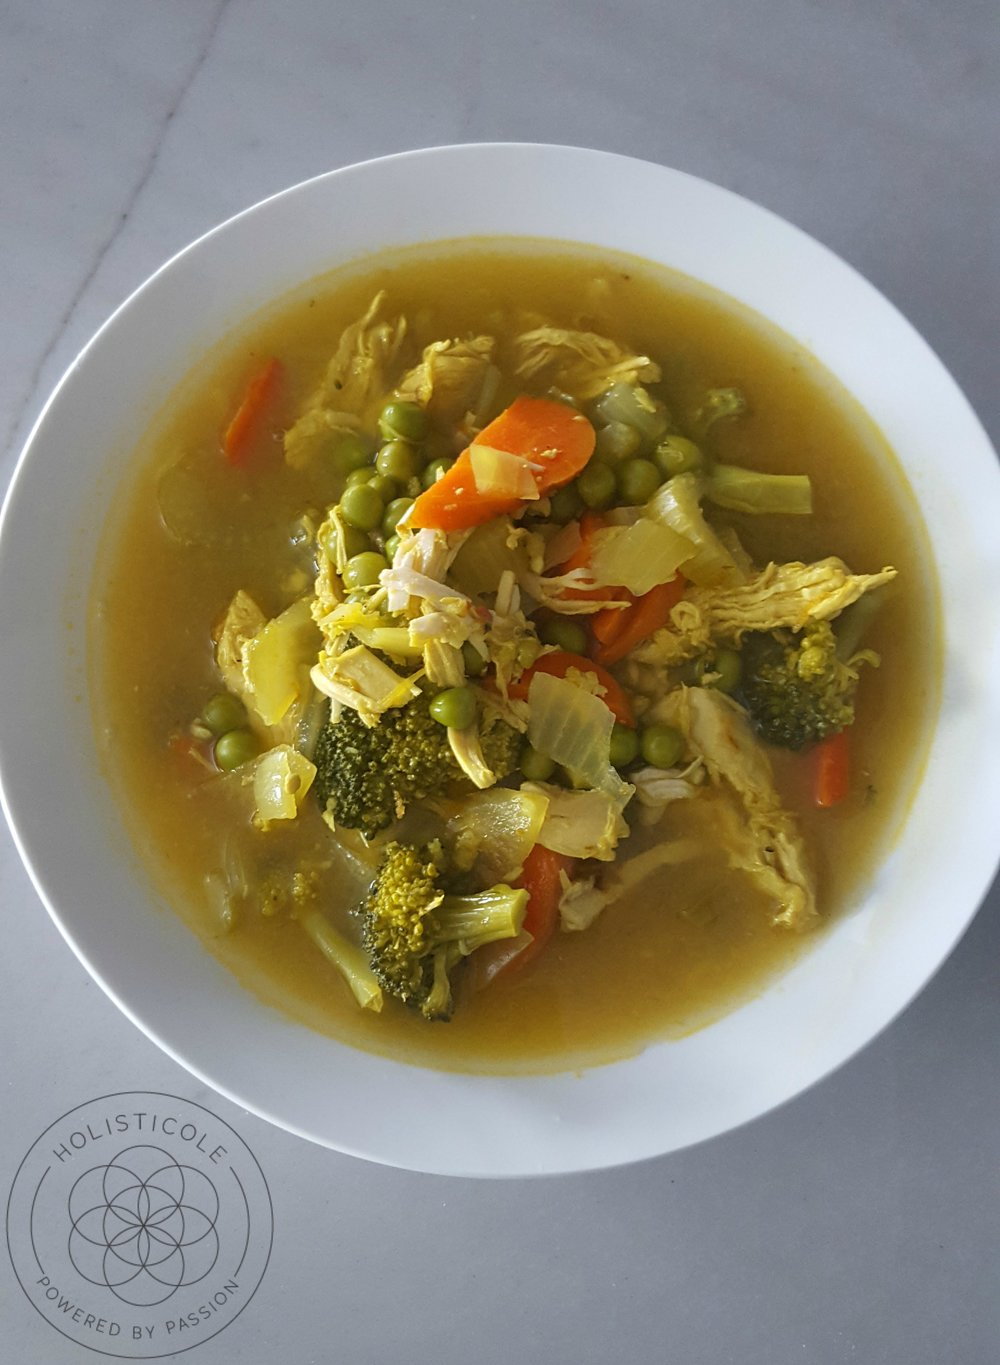 Chicken Detox Soup - Holisticole